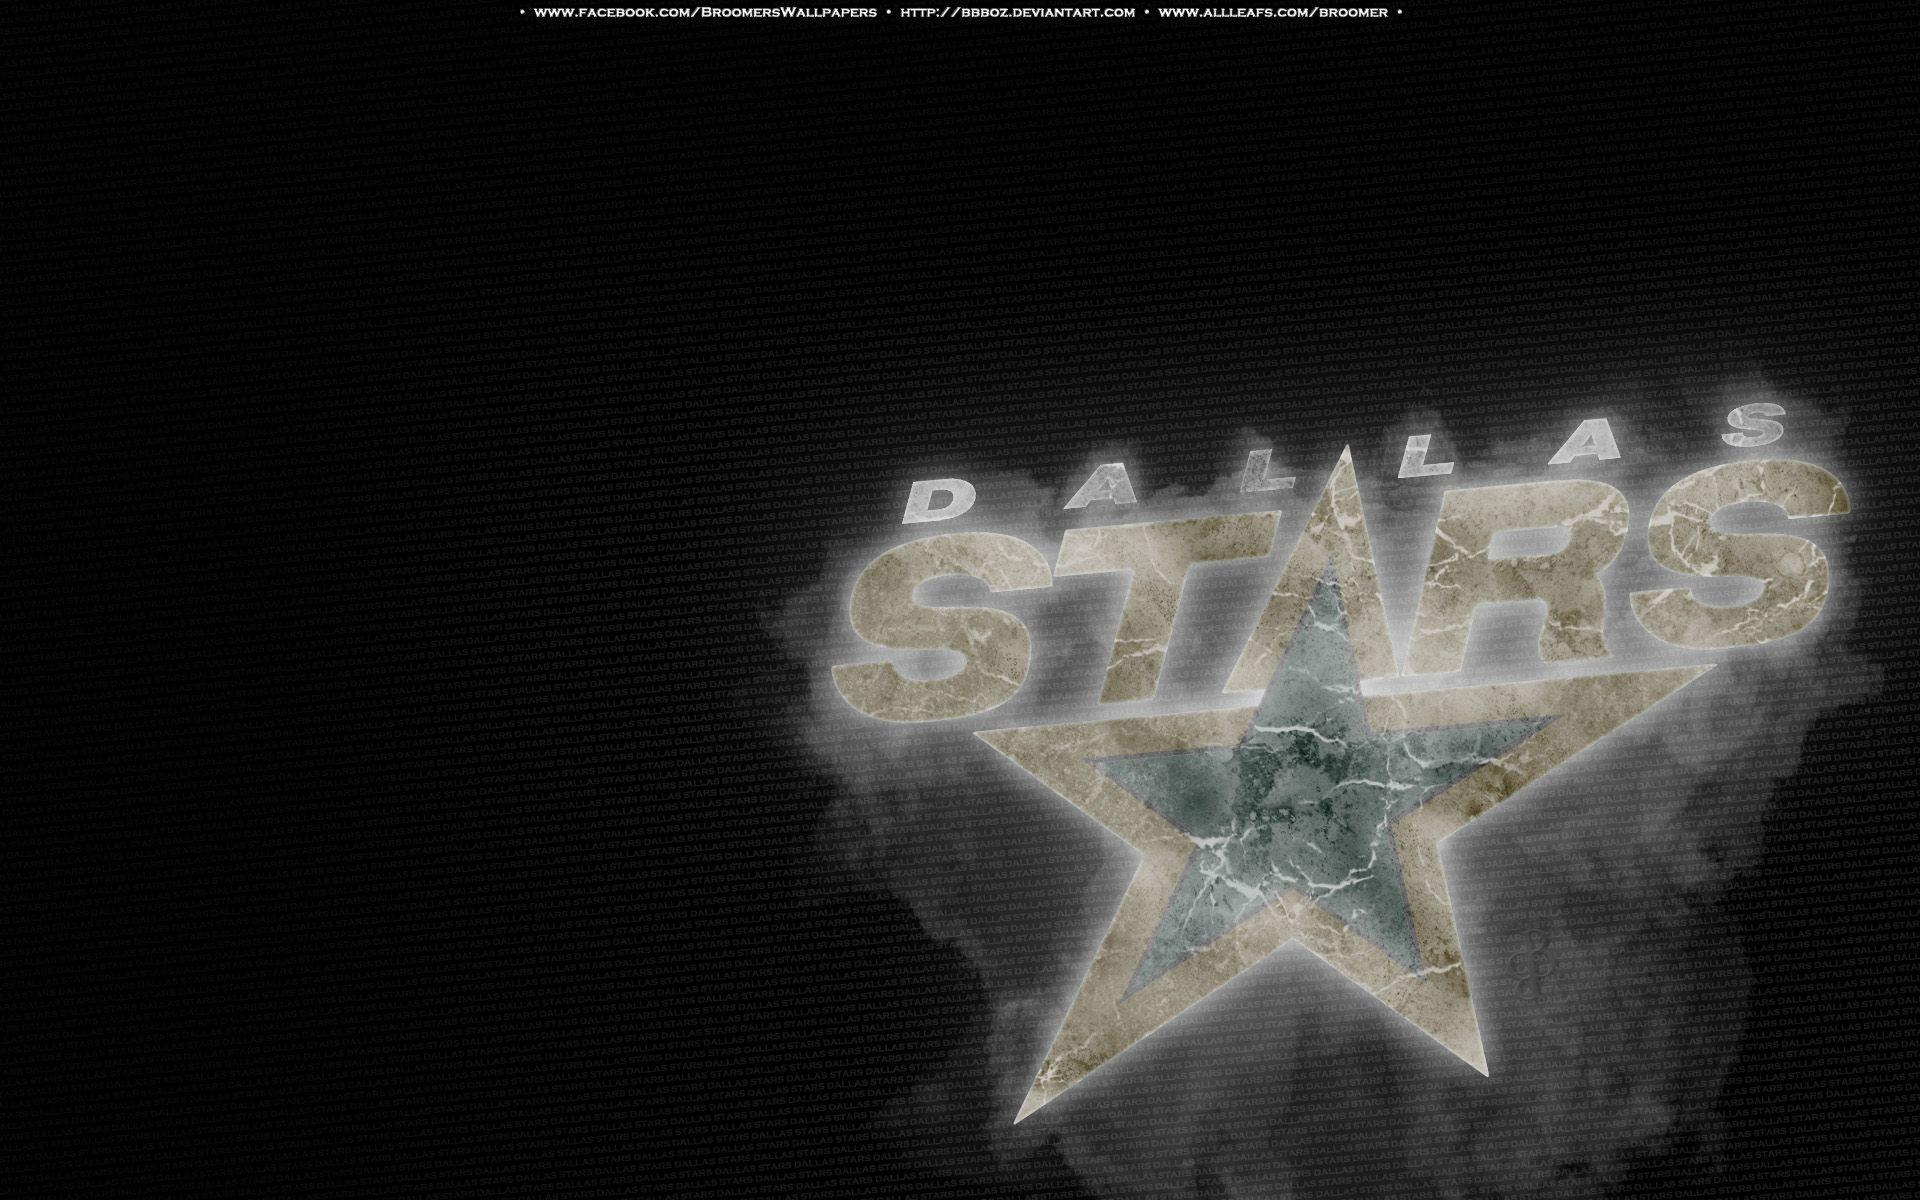 NHL wallpaper dump. Wallpapers for all teams for phone and desktop ...